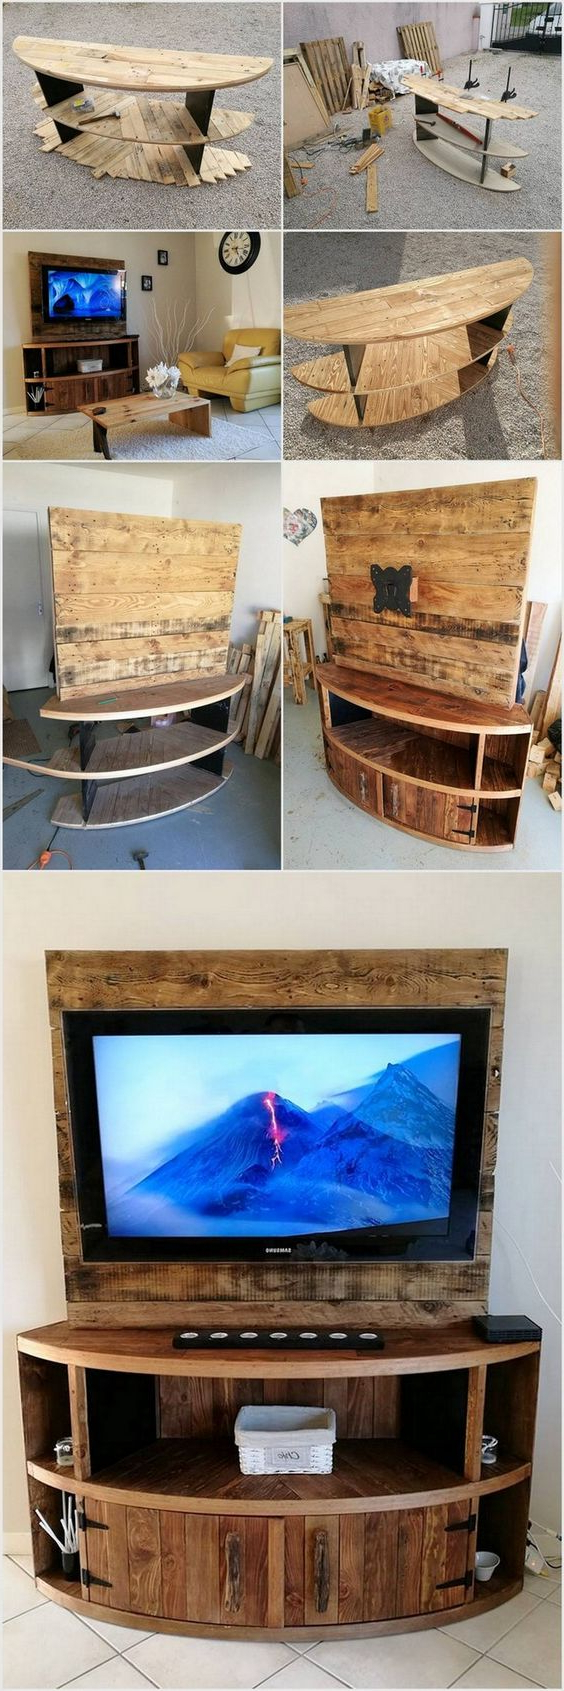 21+ Diy Tv Stand Ideas For Your Weekend Home Project Regarding Tobias Media Console Tables (Gallery 13 of 20)